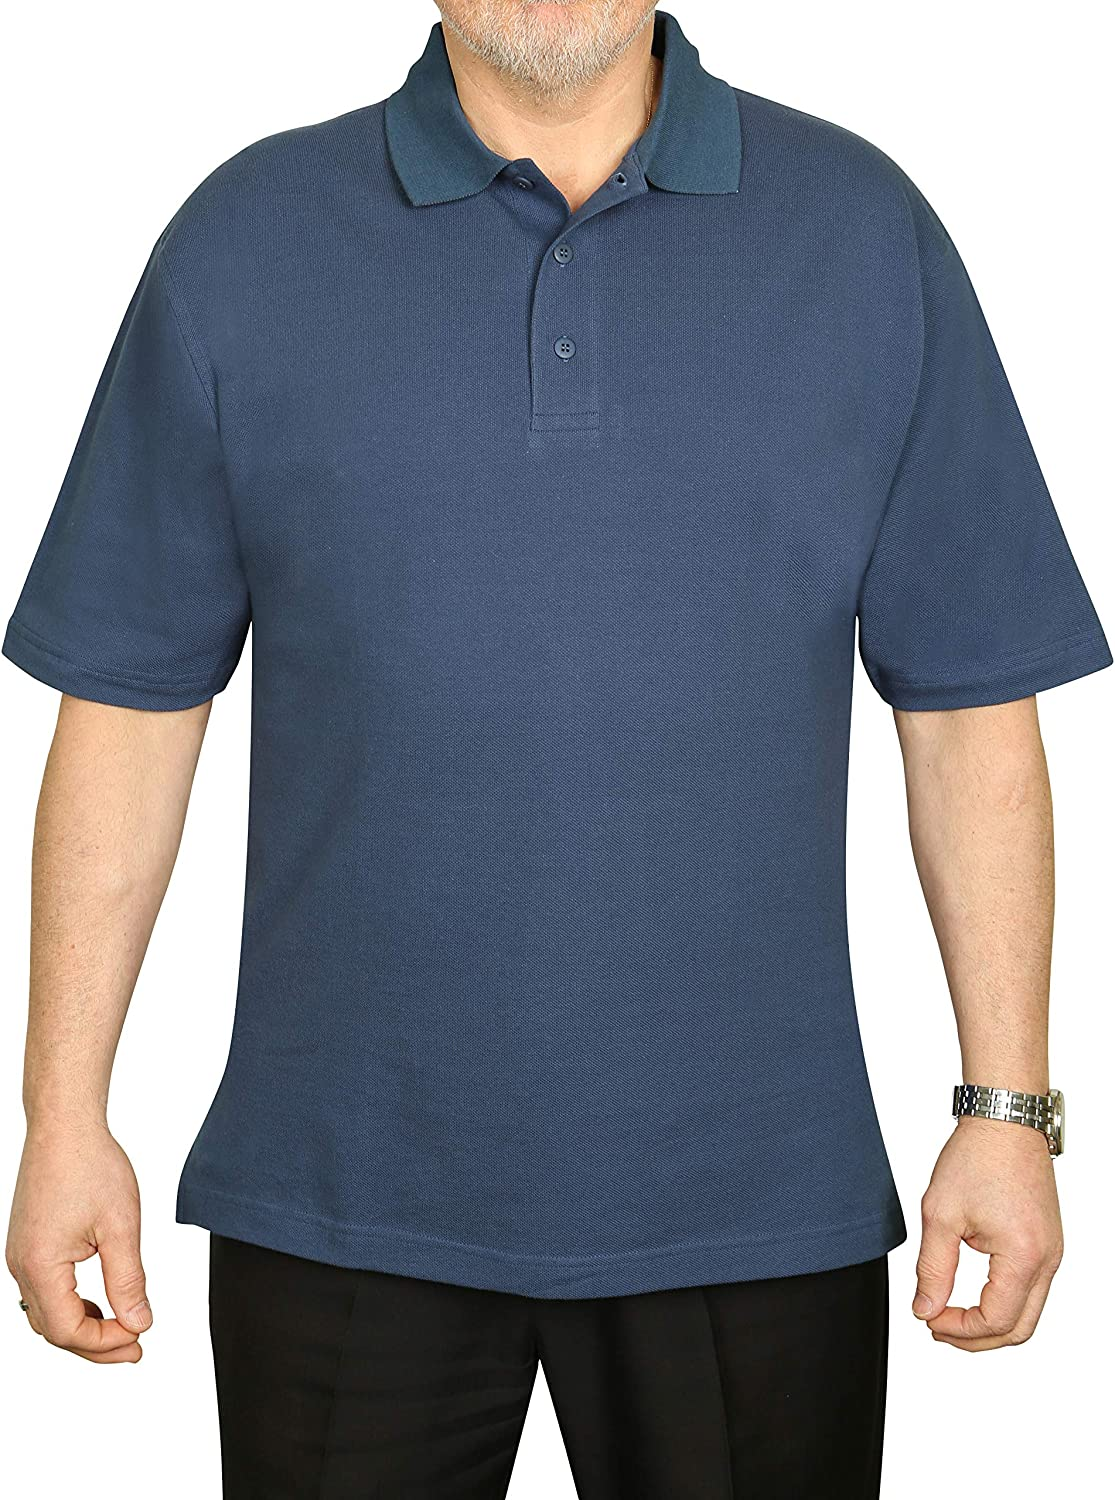 Elita Polo Shirts for Men Loose Fit Short-Sleeve Casual Work Cotton Collared T Shirt Regular /& Tall Sizes